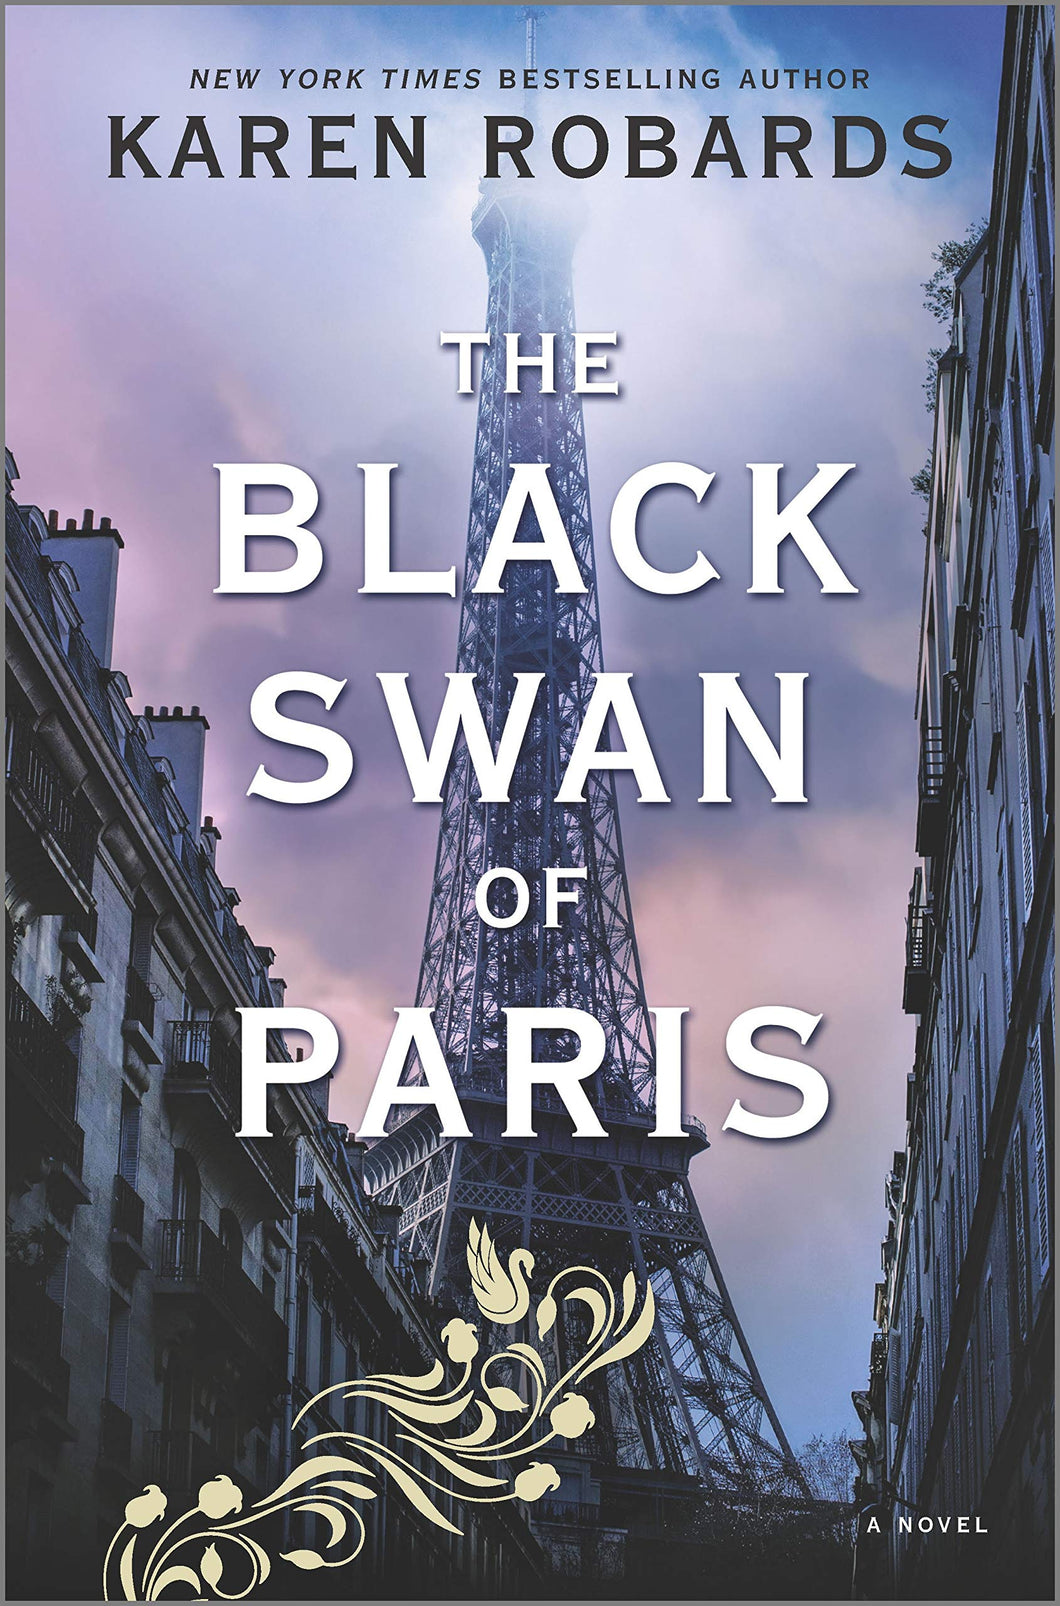 The Black Swan of Paris: A Novel